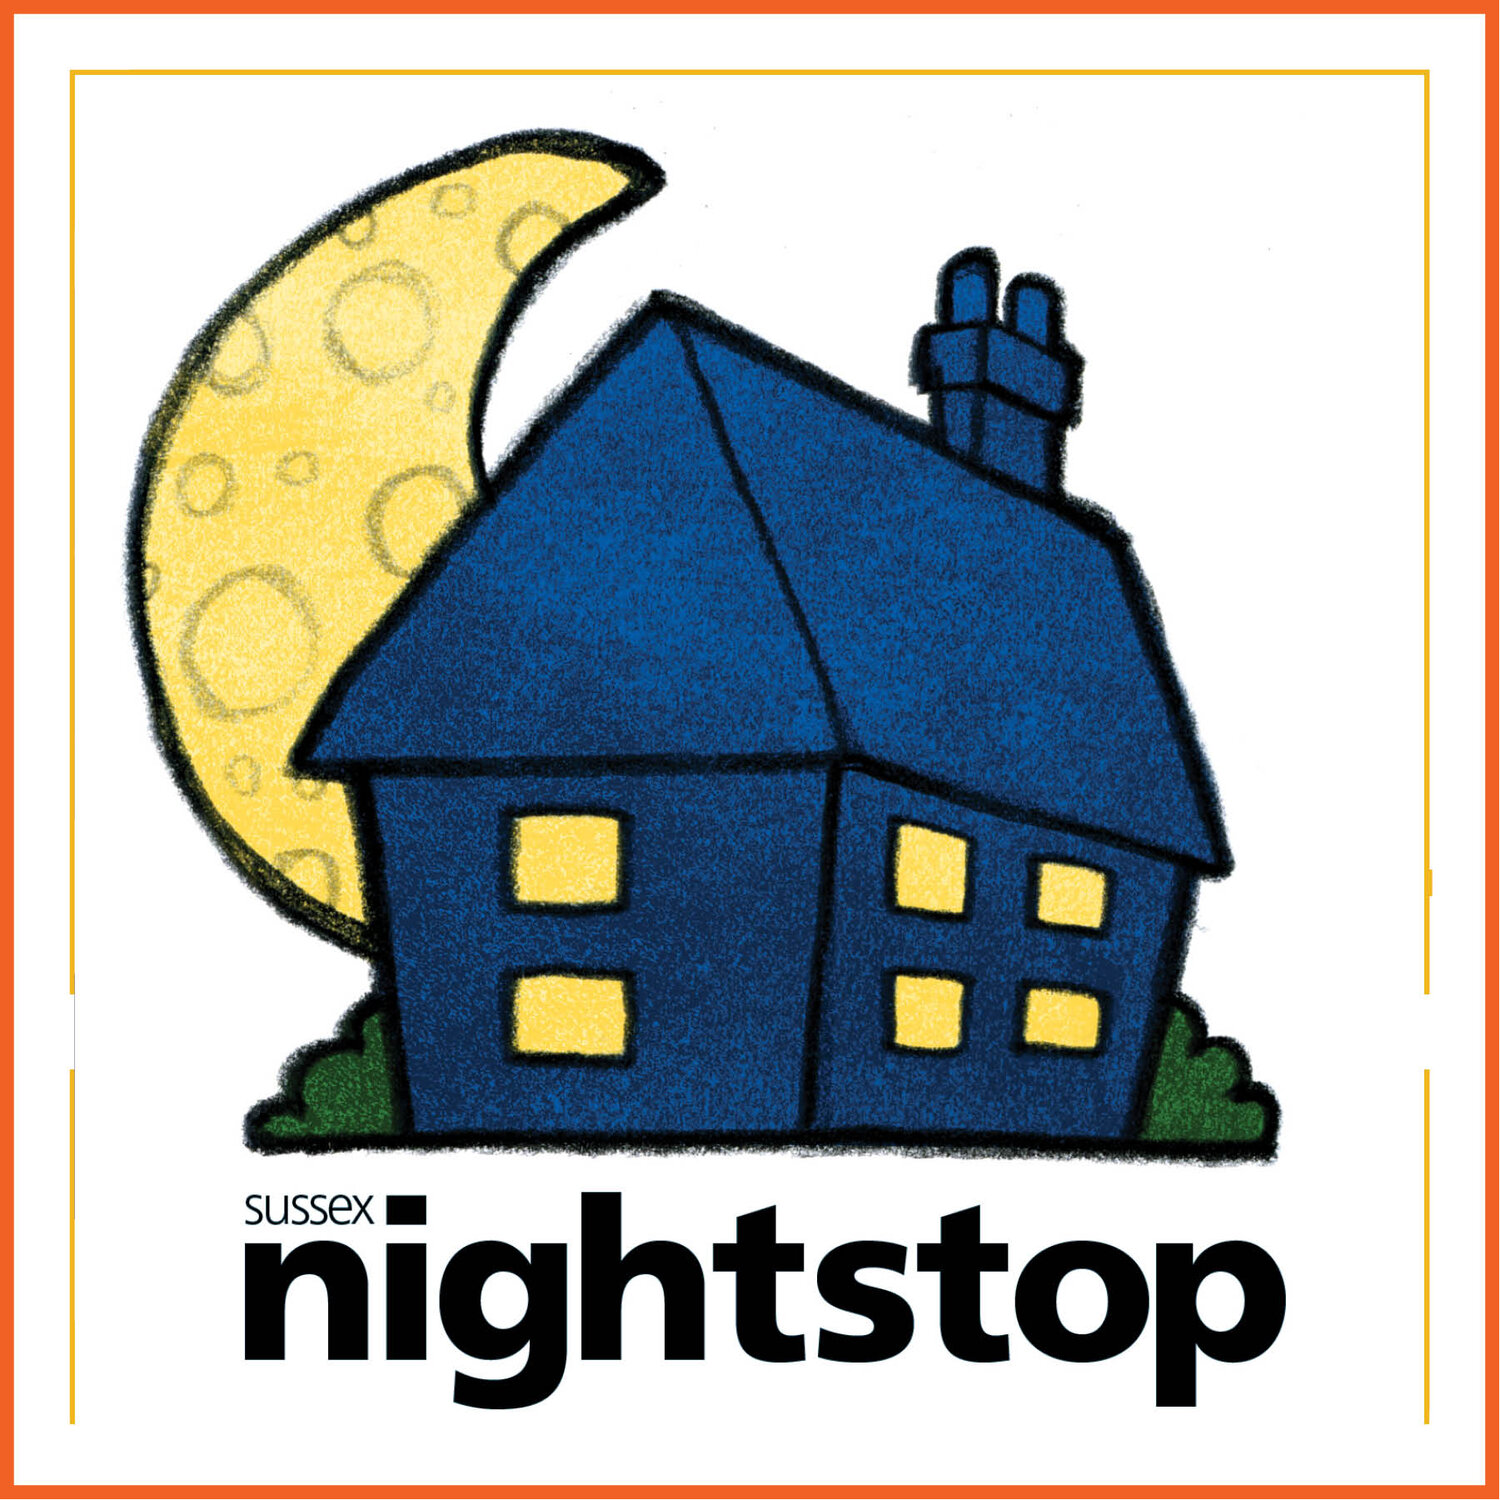 sussex nightstop logo